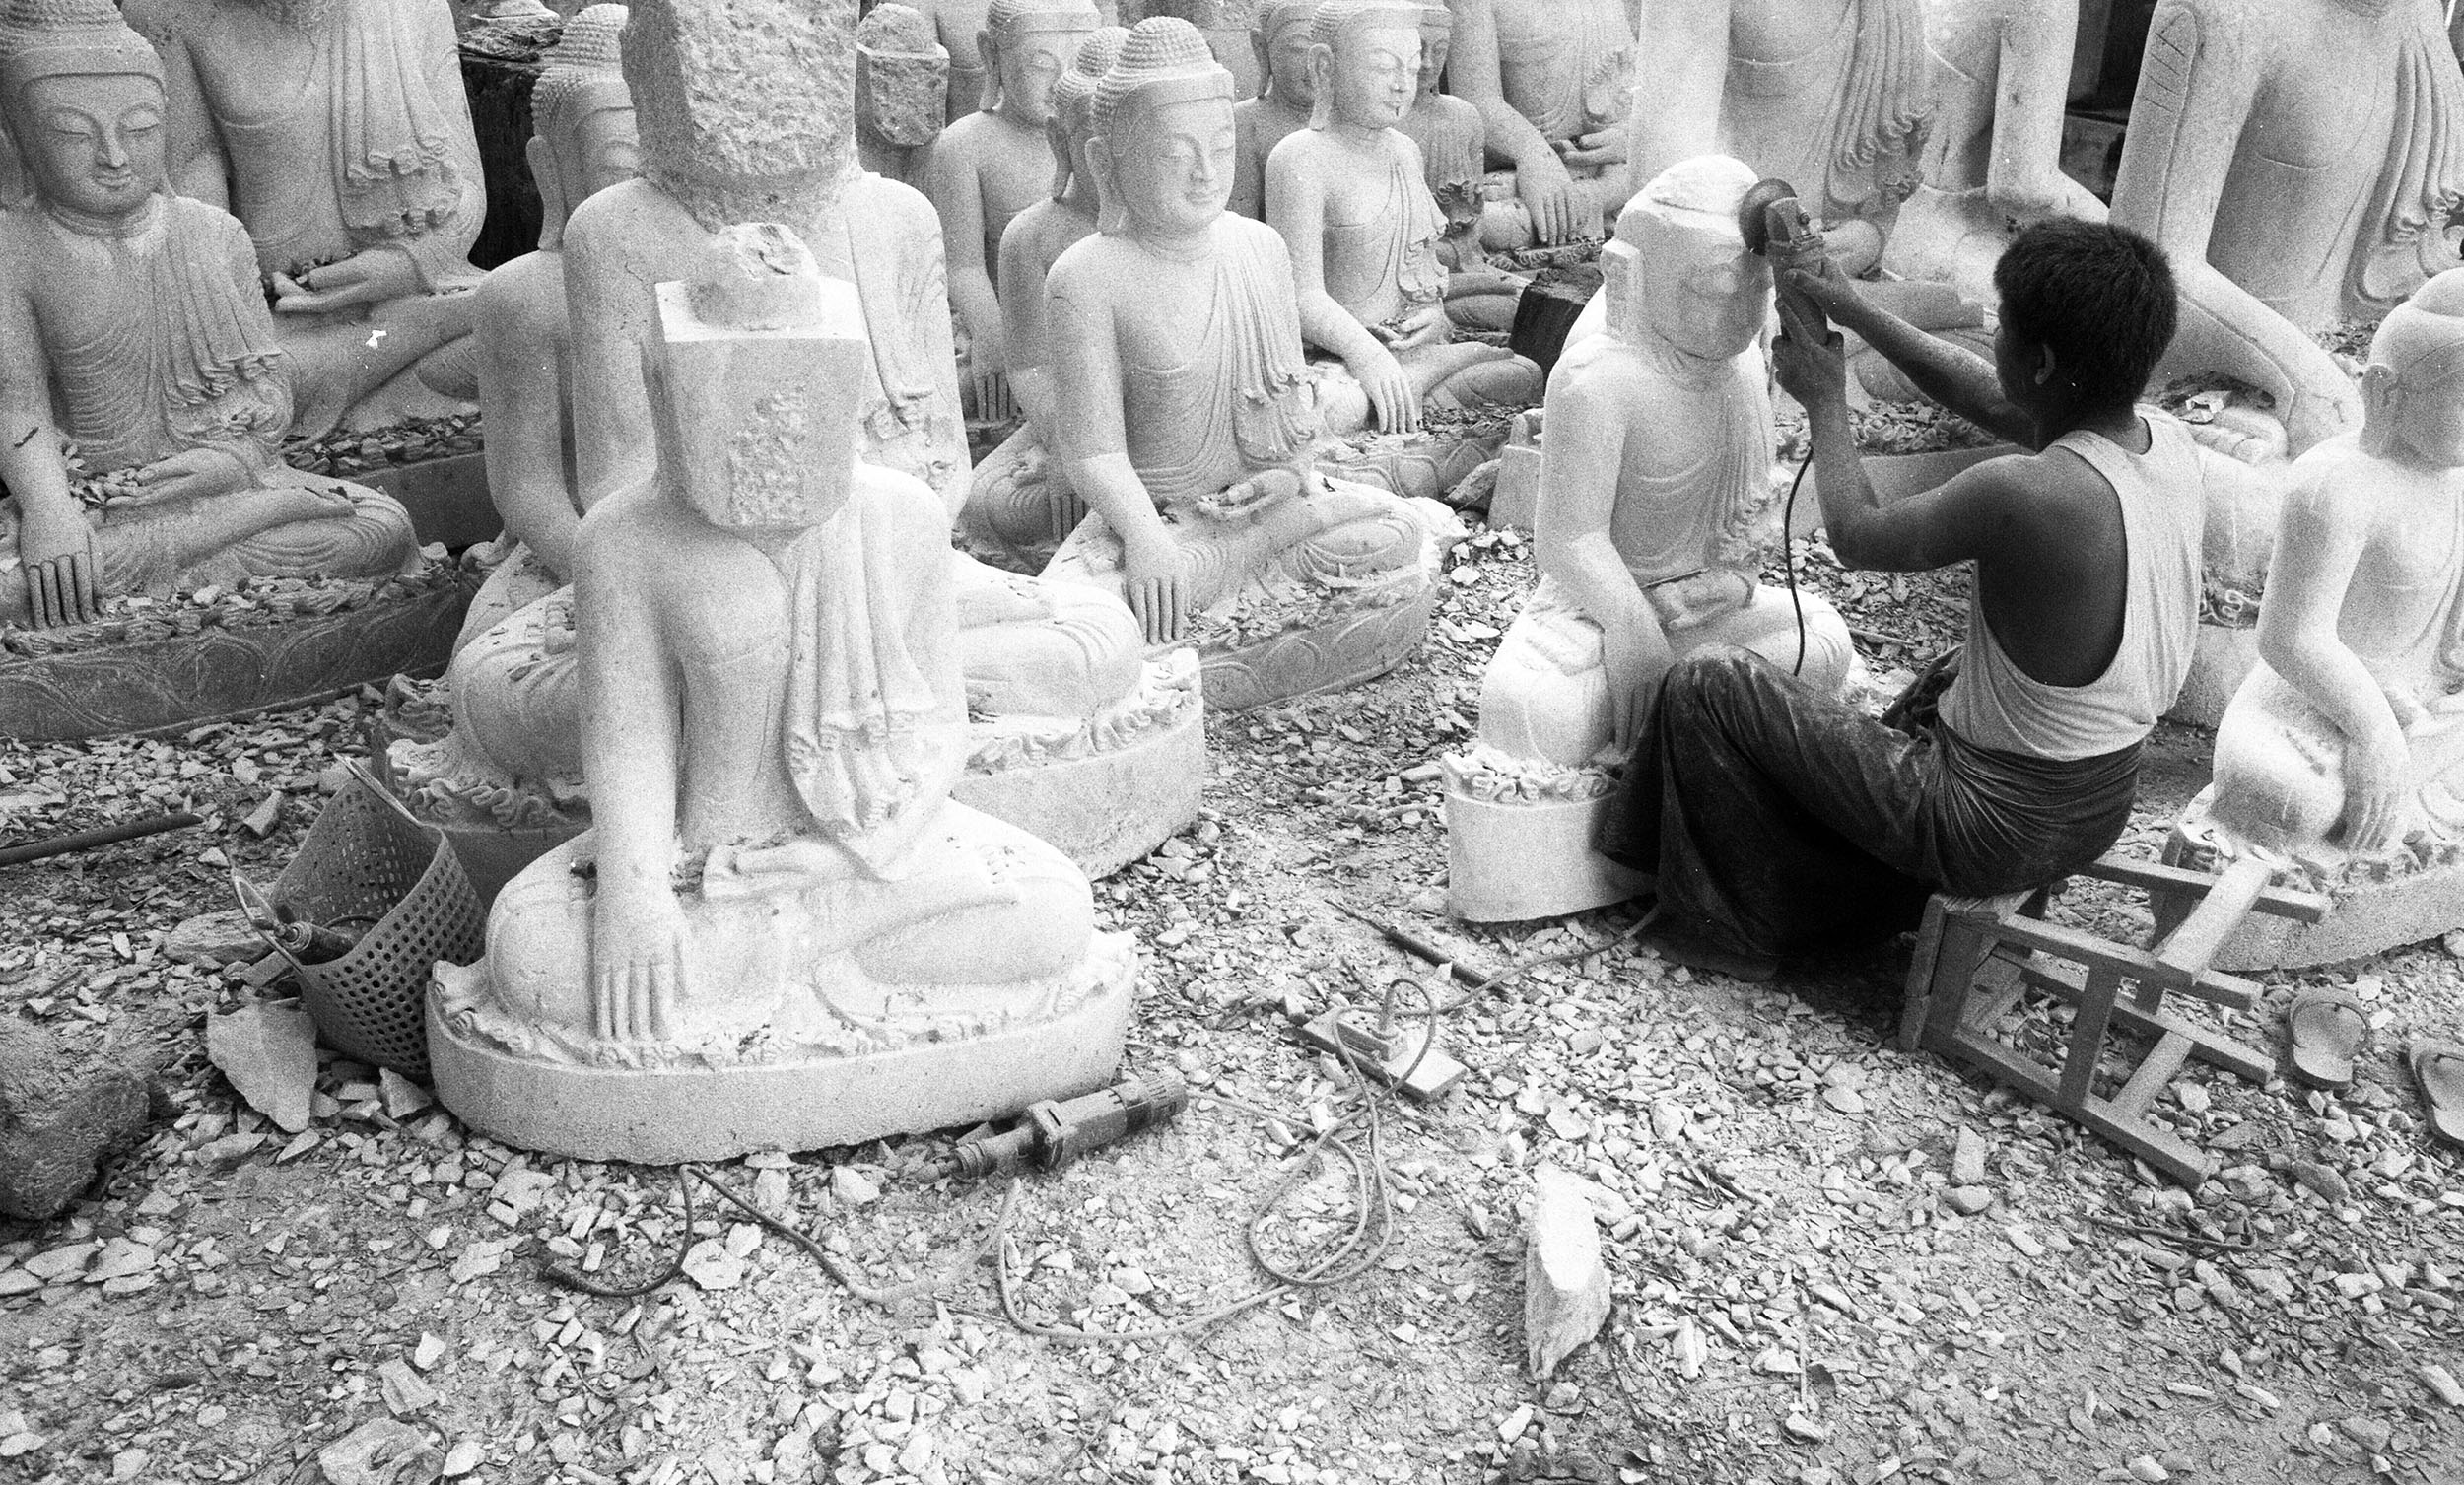 A sculptor puts the finishing touches to Buddha's face in Mandalay.